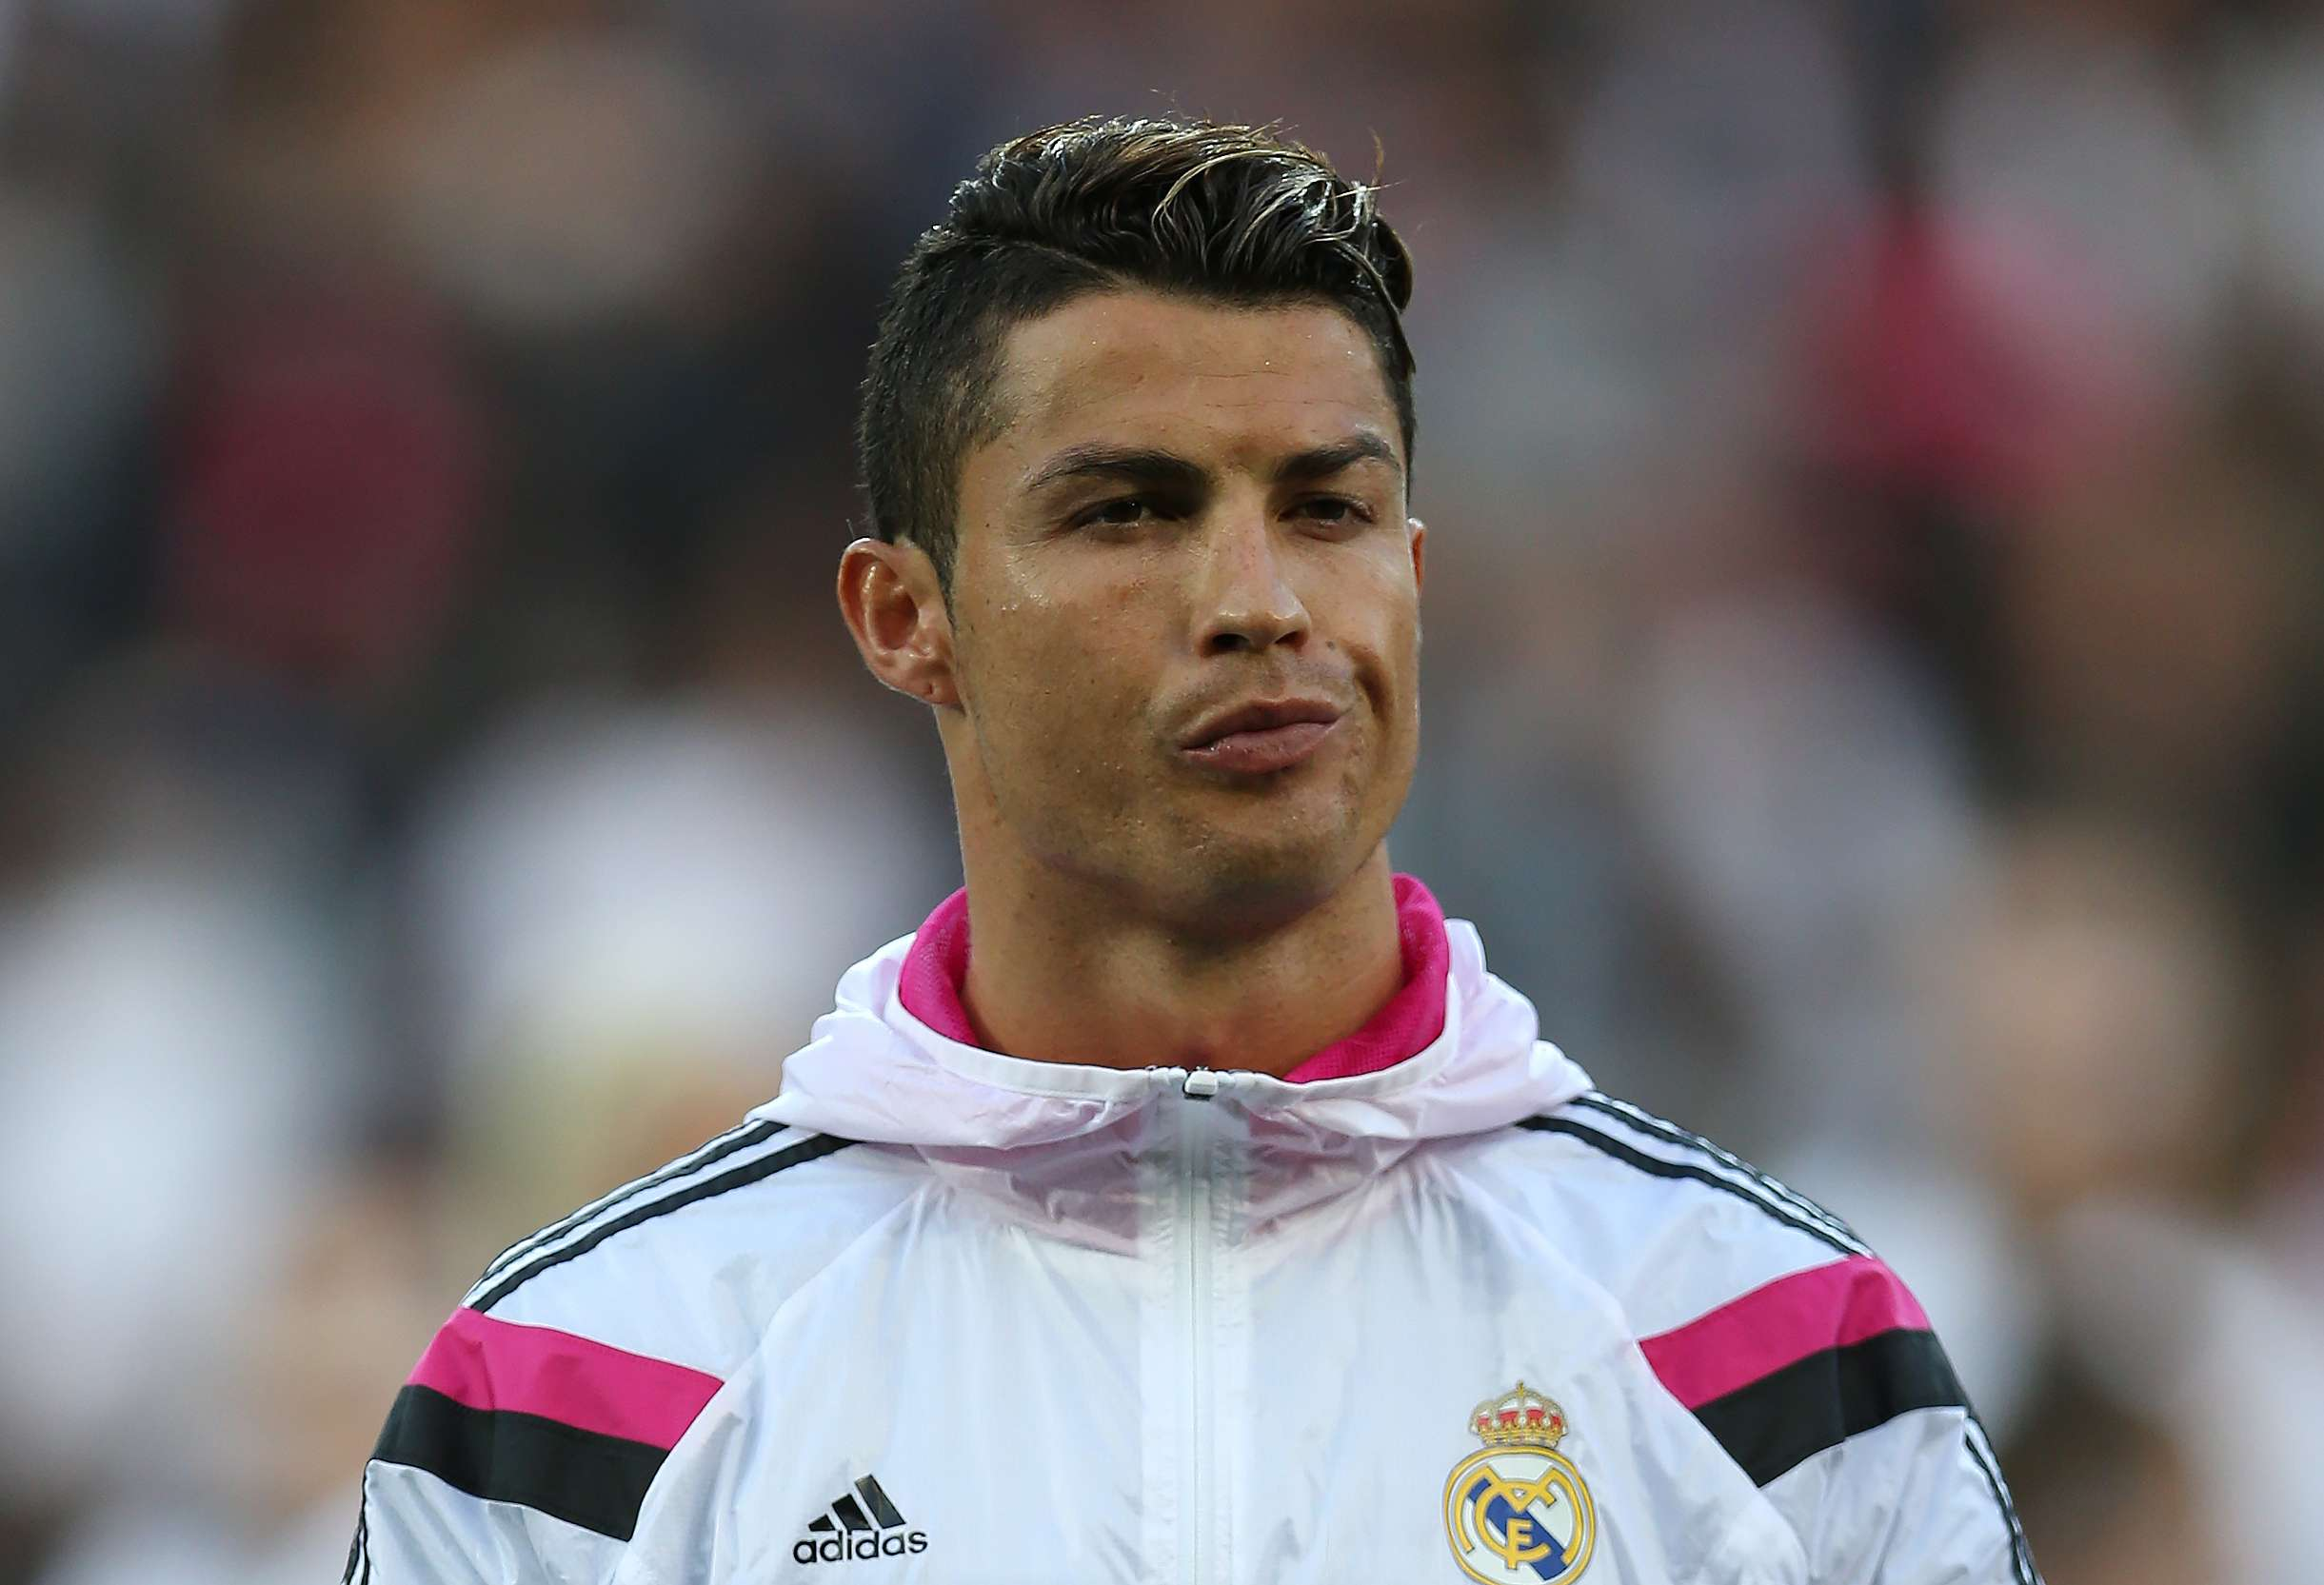 Cristiano Ronaldo regresaría a la Premier League. Foto: Getty Images